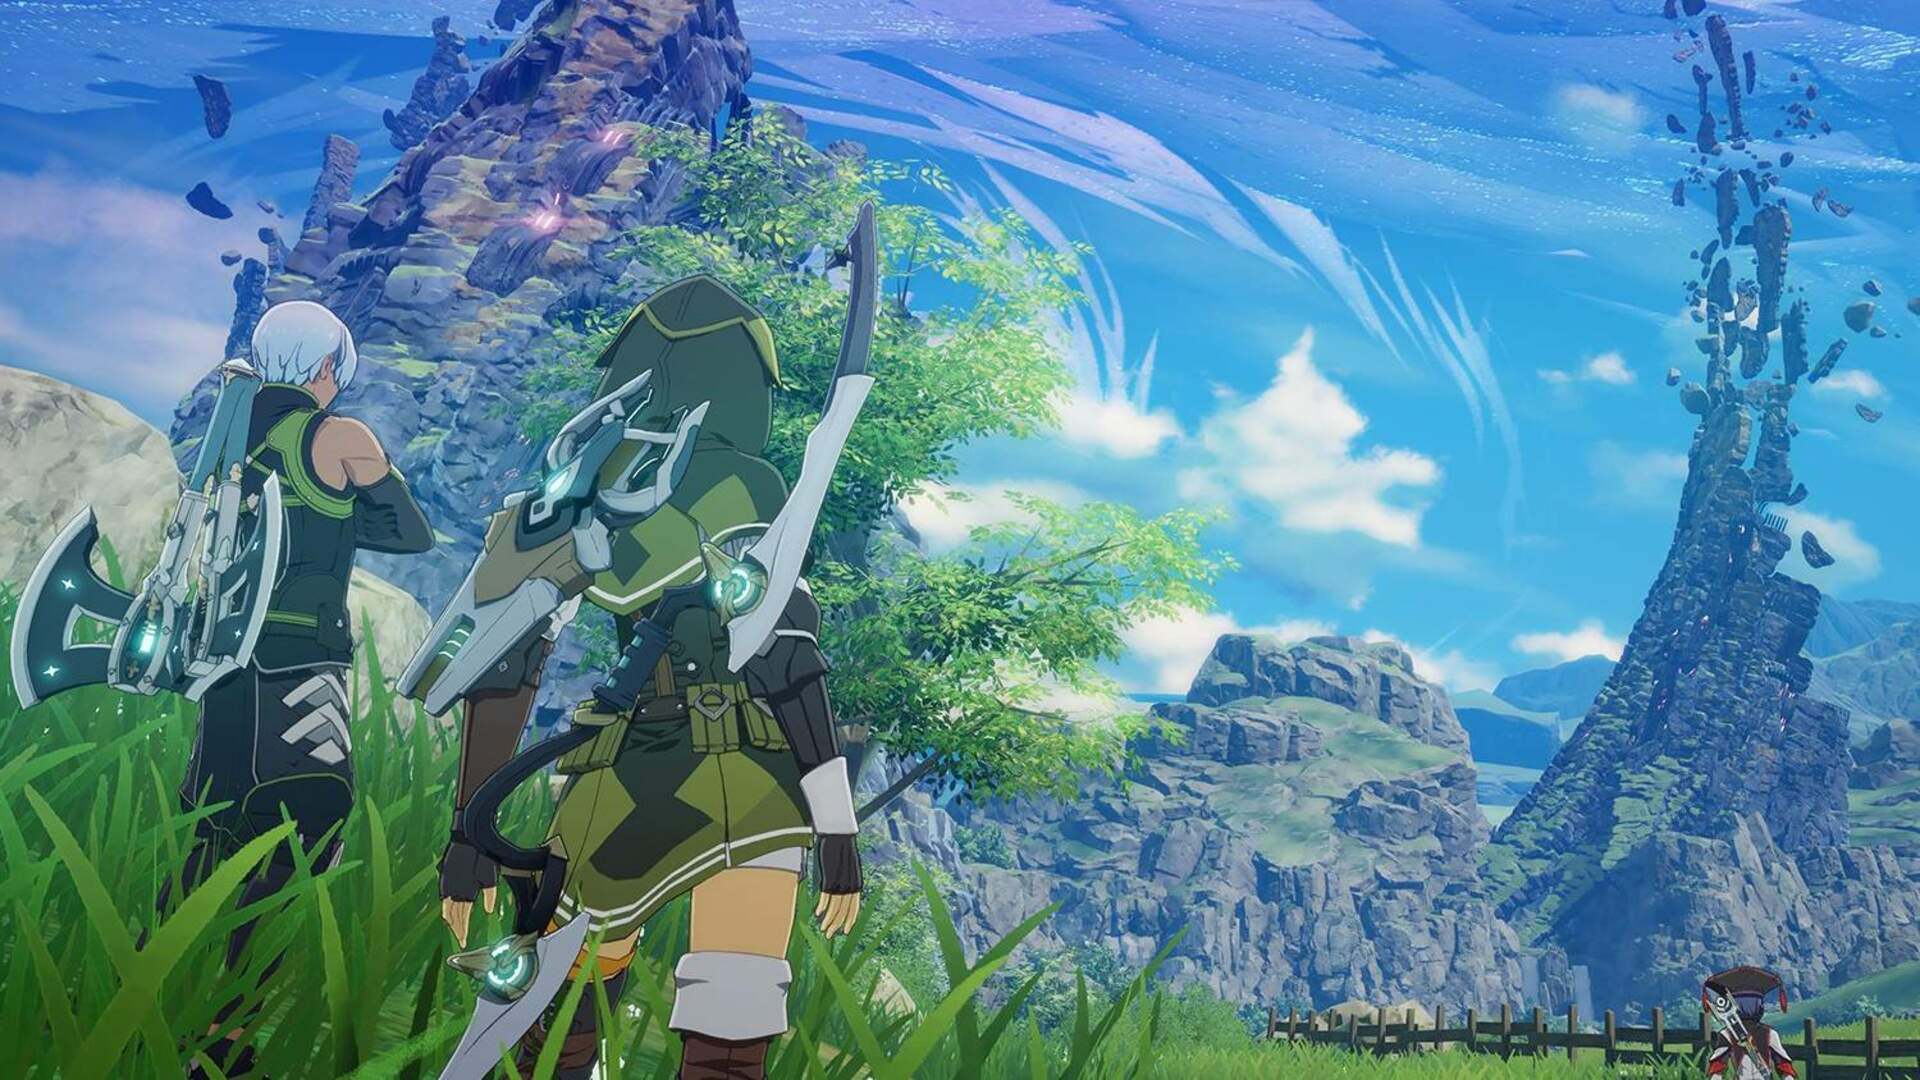 Bandai Namco's Blue Protocol is an Upcoming Online Action-RPG Built With Unreal Engine 4